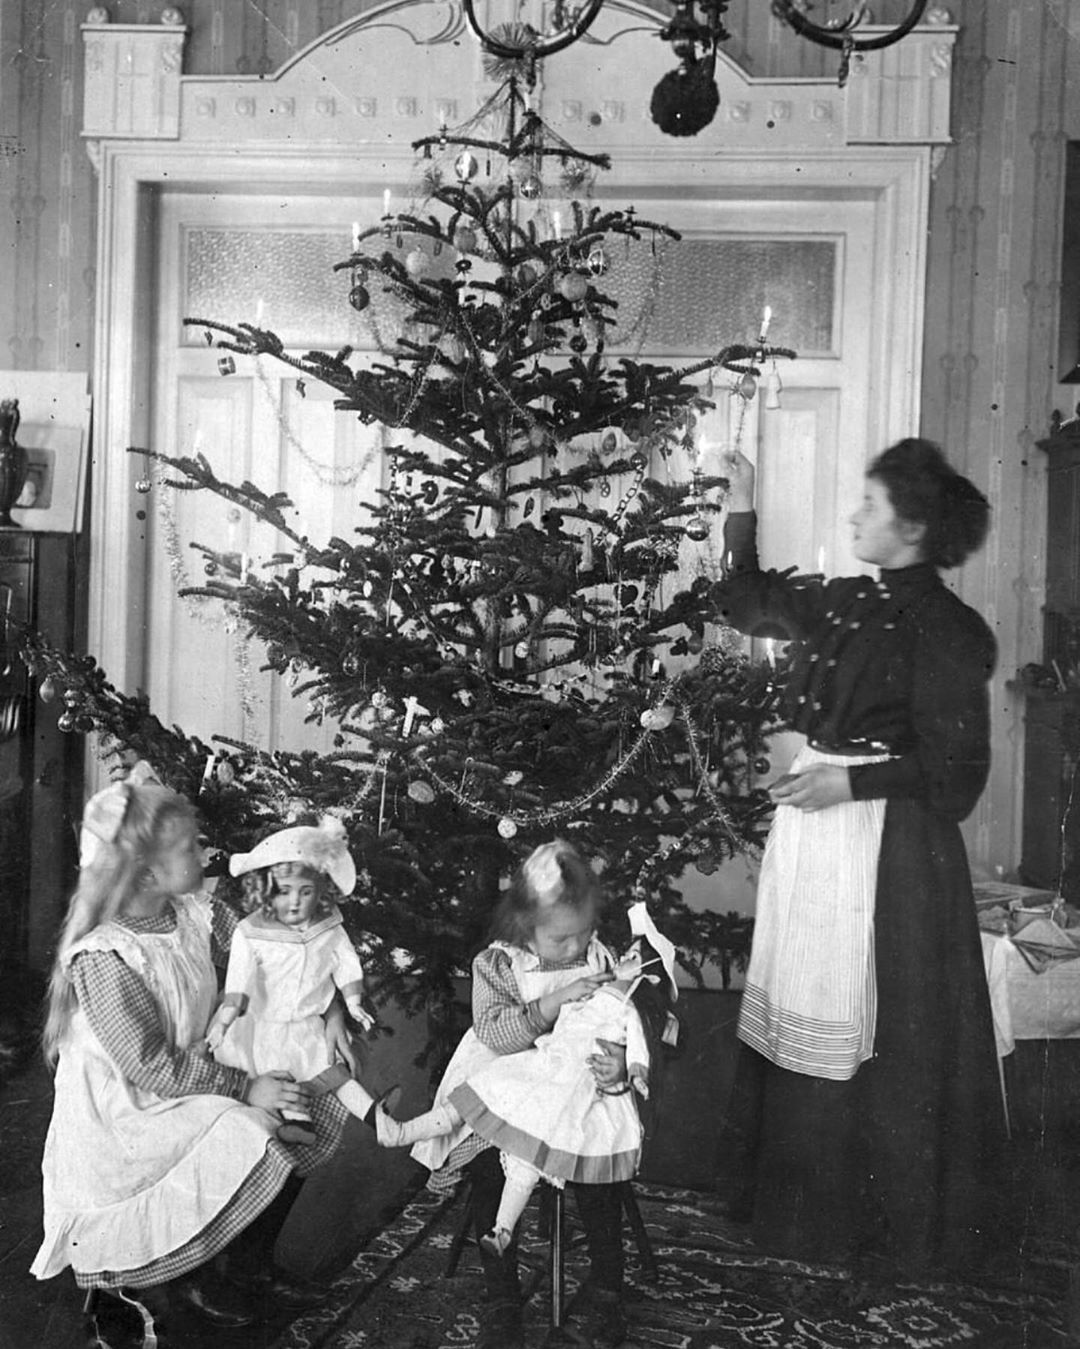 Lana S Victorian Gallery On Instagram A British Mother Lighting The Christmas Tree Circa 1900s Merry Chris I 2020 Gammeldags Jul Juletraeer Julebilleder